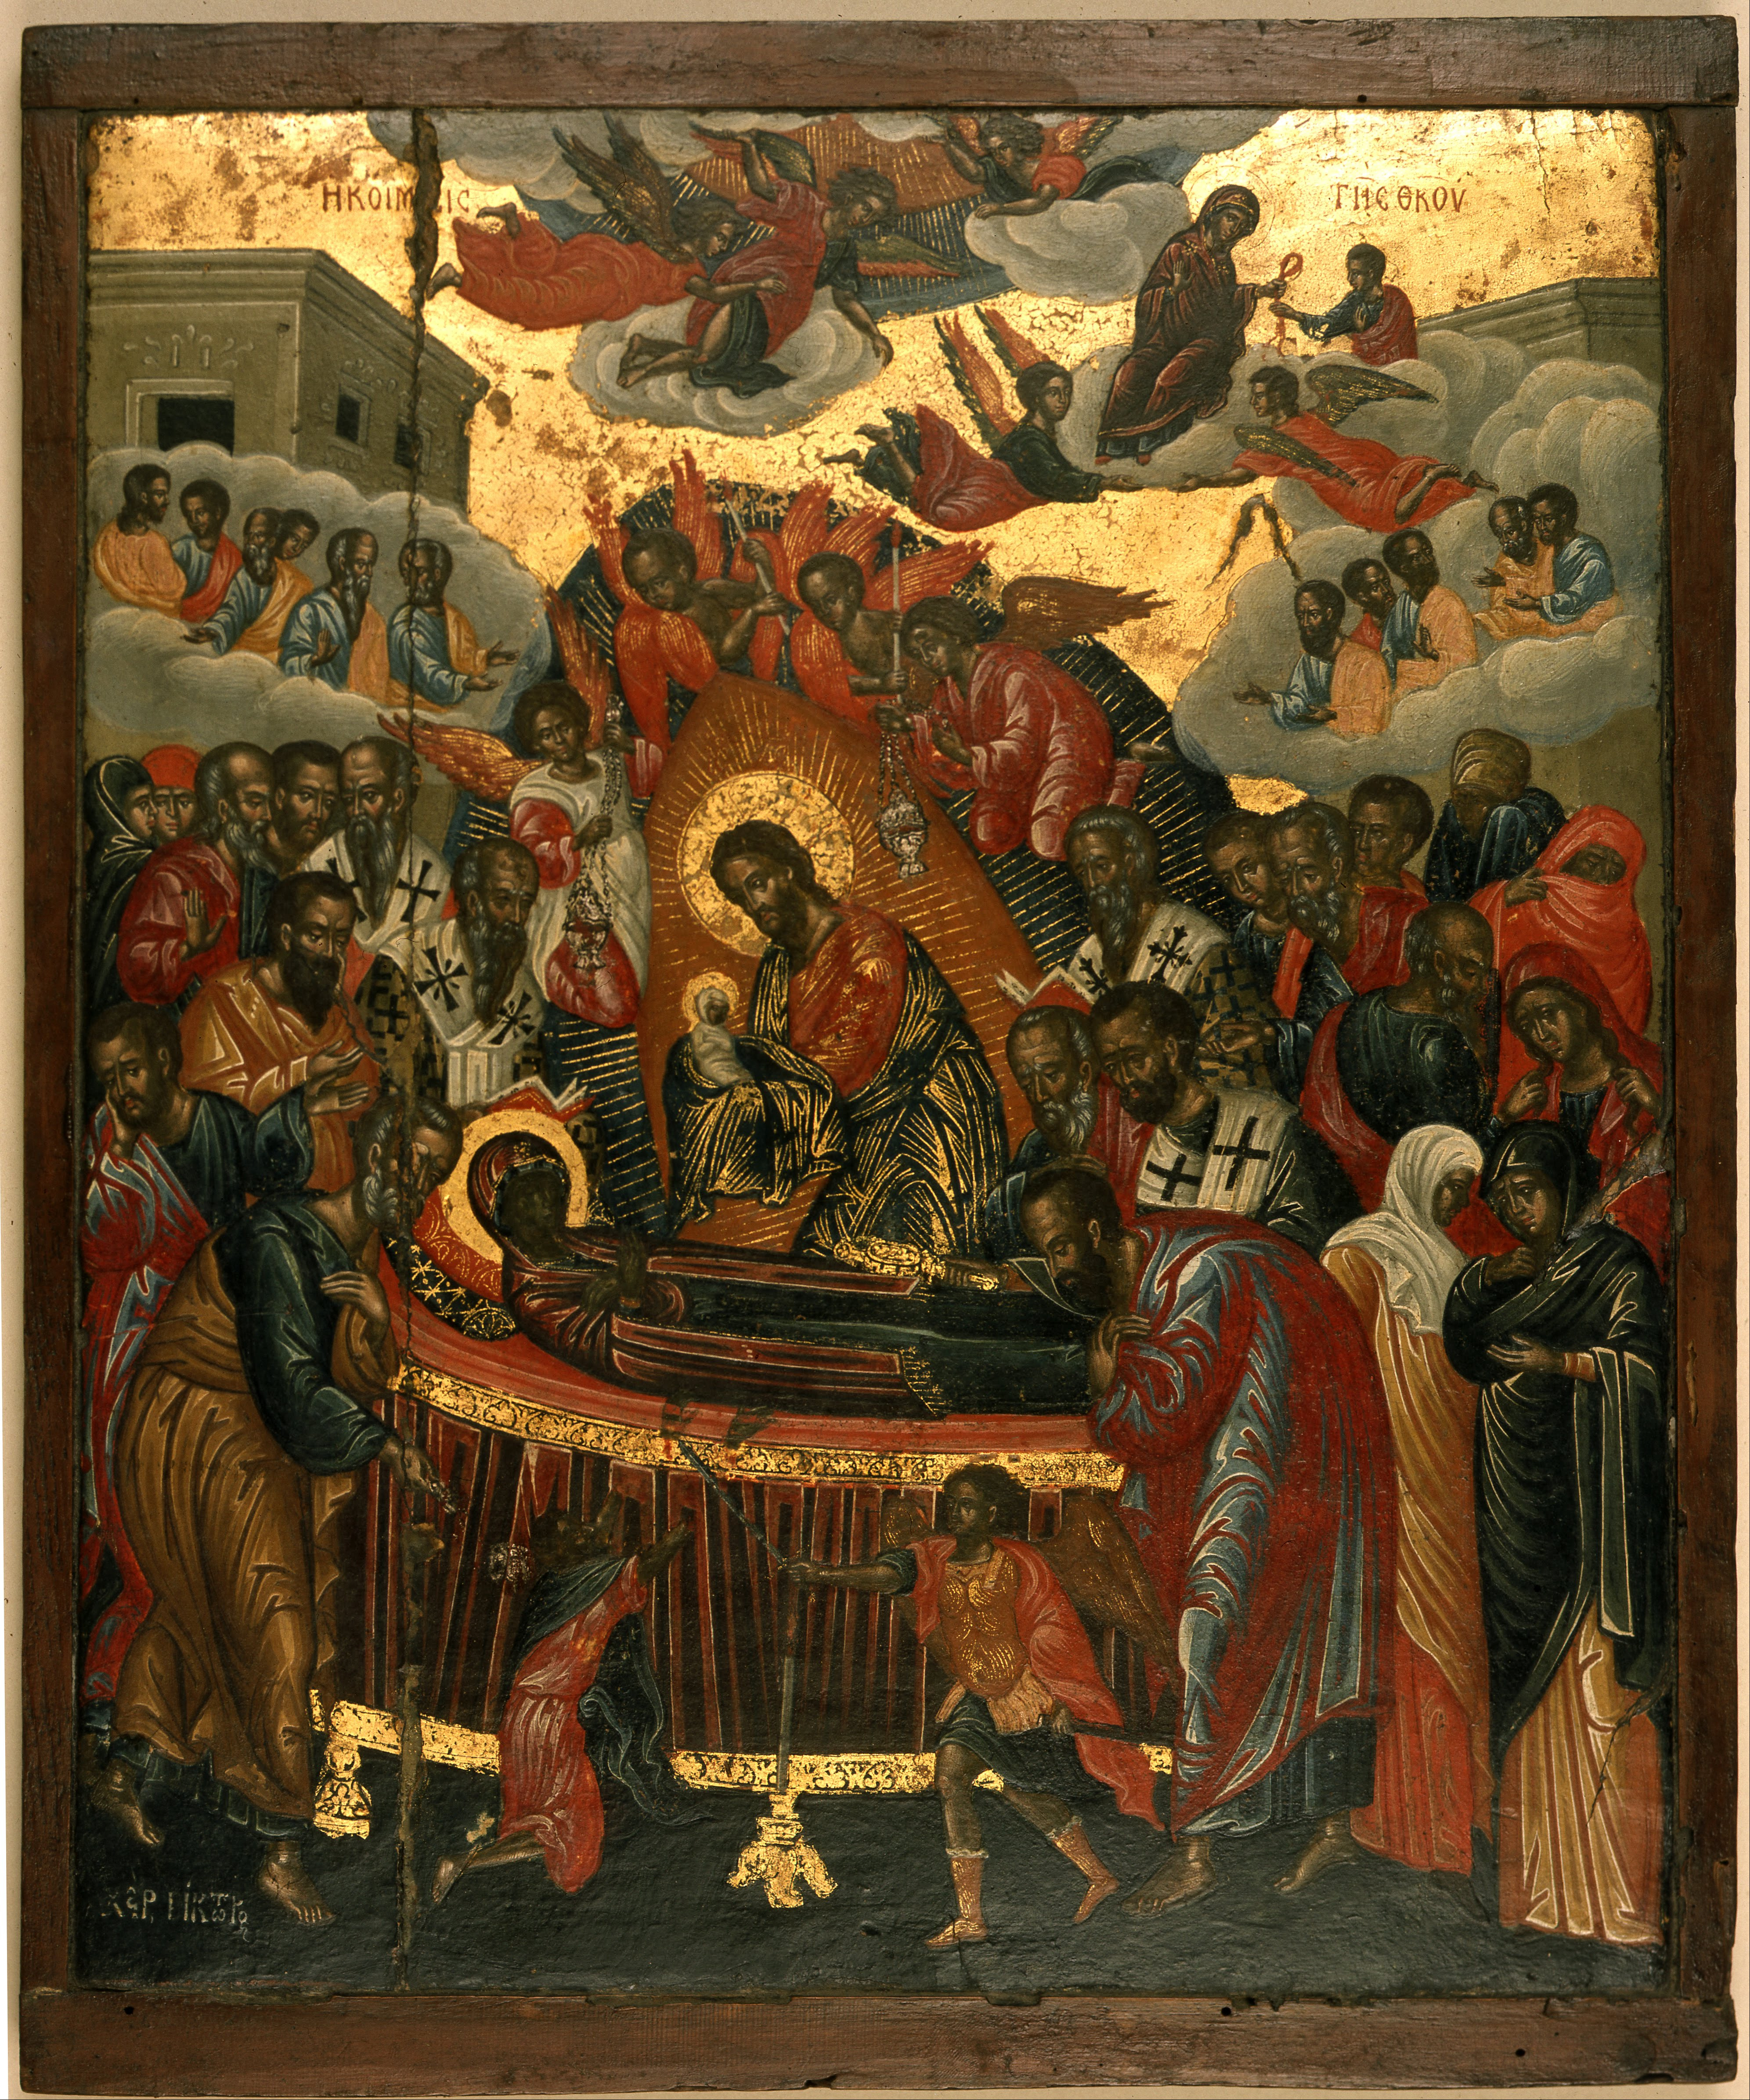 https://upload.wikimedia.org/wikipedia/commons/6/66/Priest_Victor_-_The_Dormition_of_the_Virgin_-_Google_Art_Project.jpg